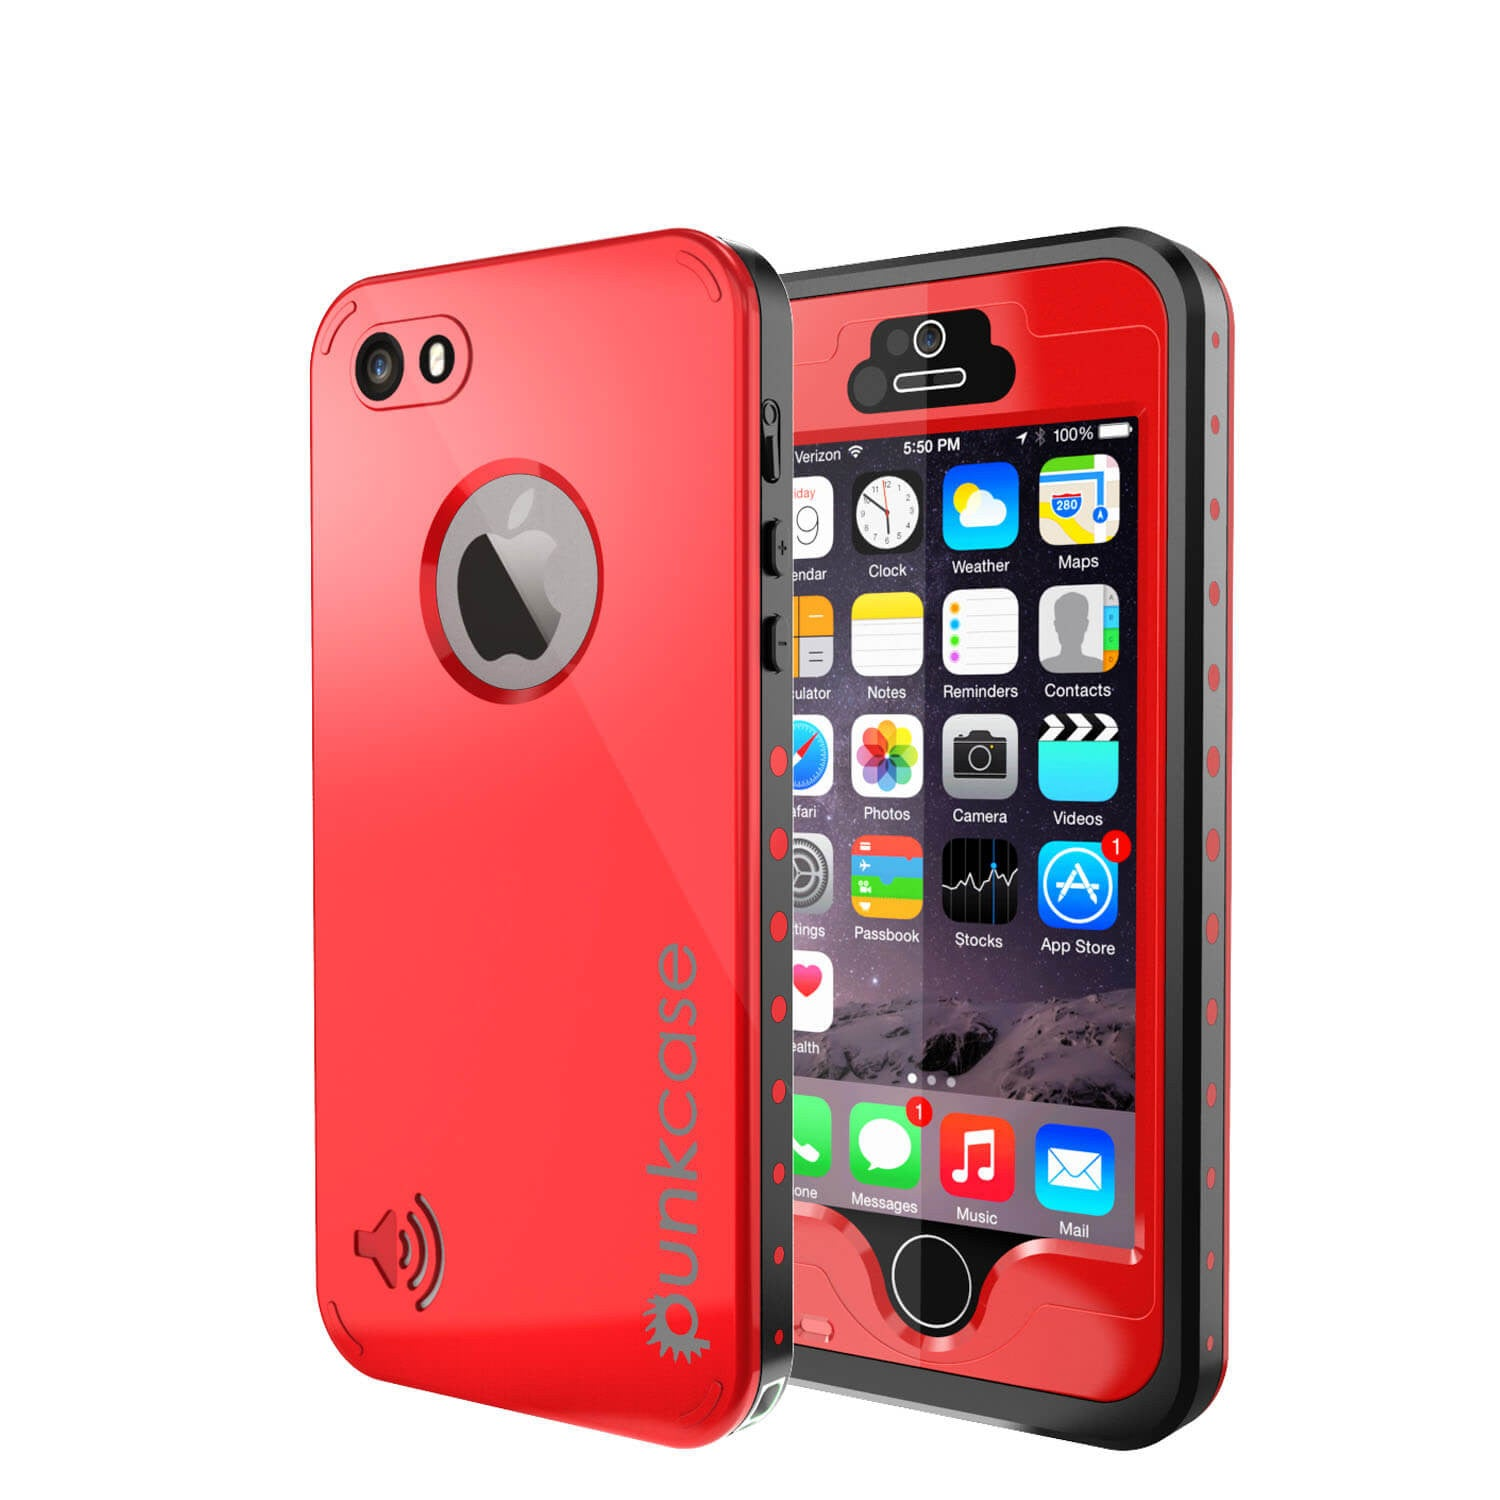 iPhone 5S/5 Waterproof Case, PunkCase StudStar Red Case Water/Shock/Dirt Proof | Lifetime Warranty